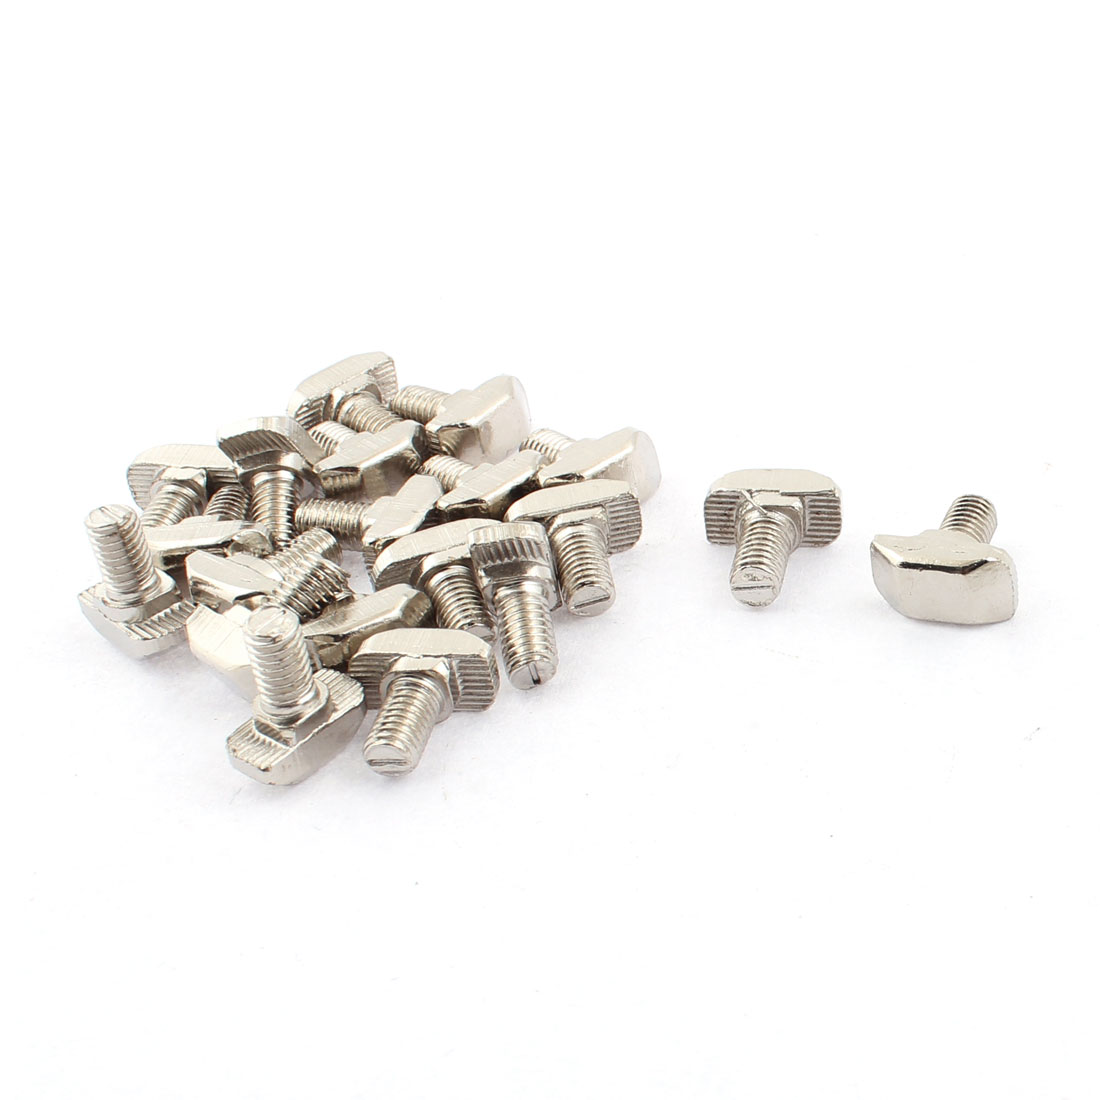 M6 x 12mm Metal T Slot Drop-in Stud Sliding Bolt Screw Silver Tone 20pcs